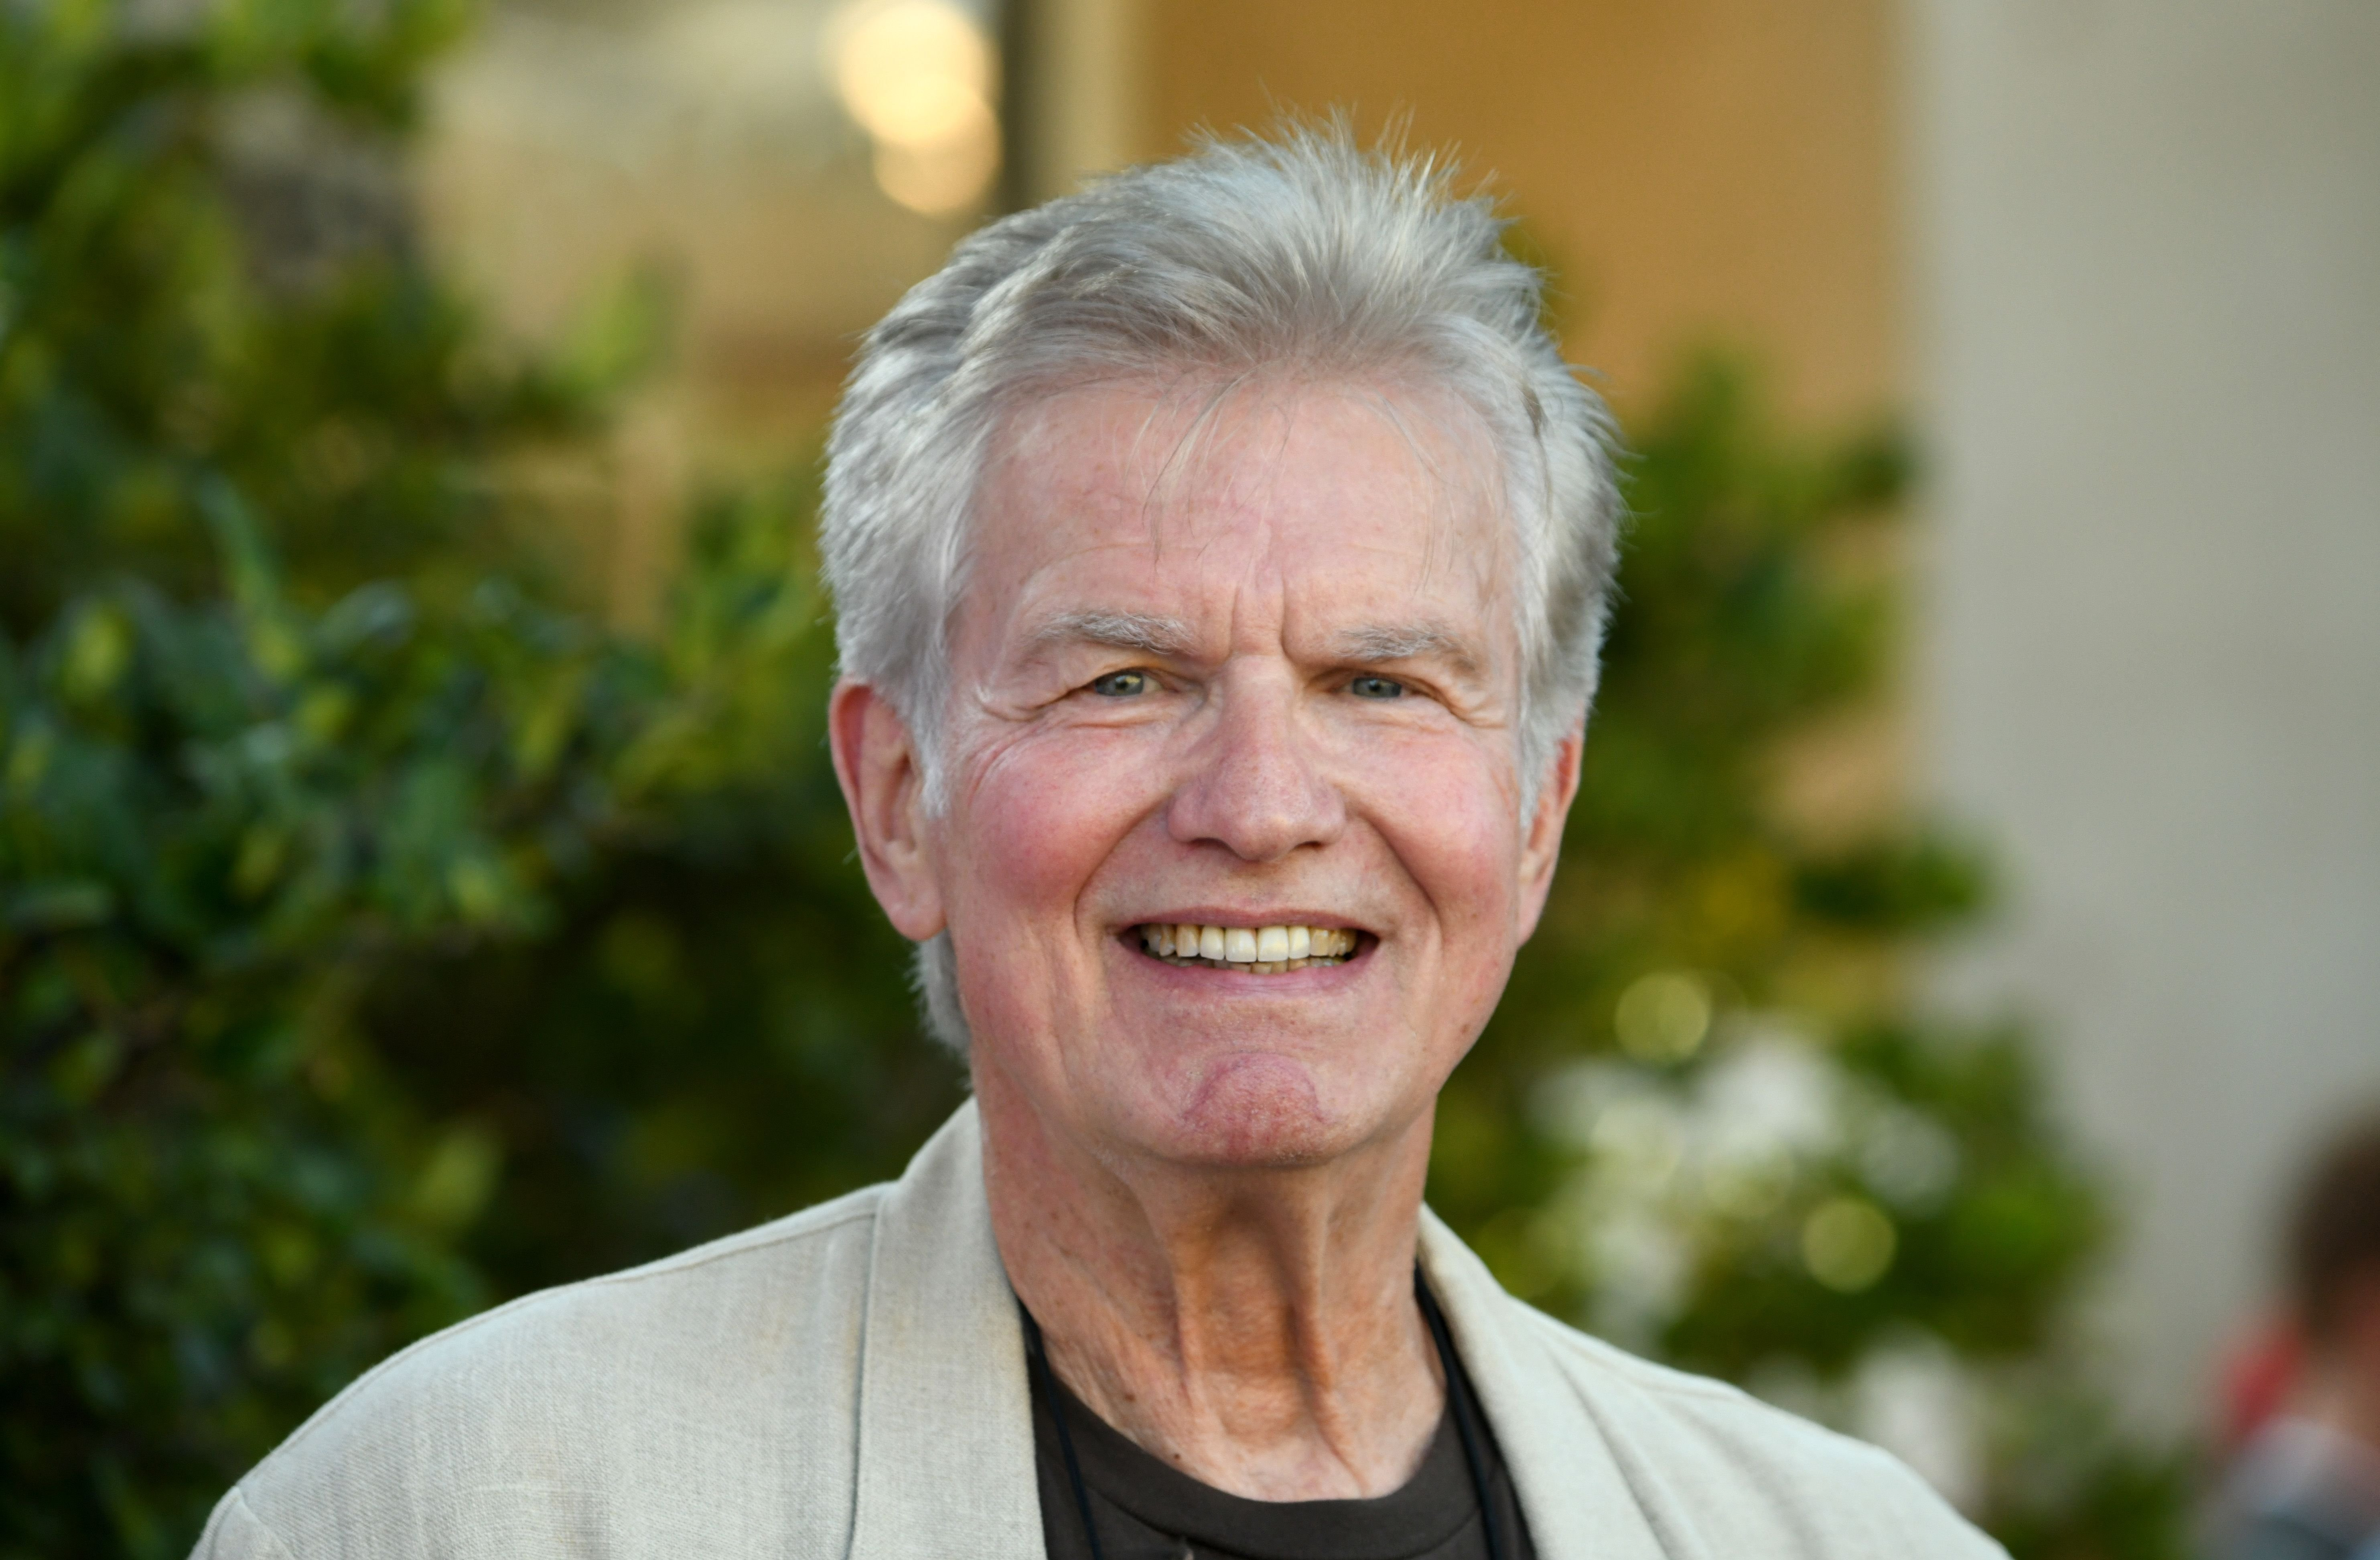 Kent McCord at the 2019 Festival of Arts Celebrity Benefit Event on August 24, 2019 | Photo: Getty Images